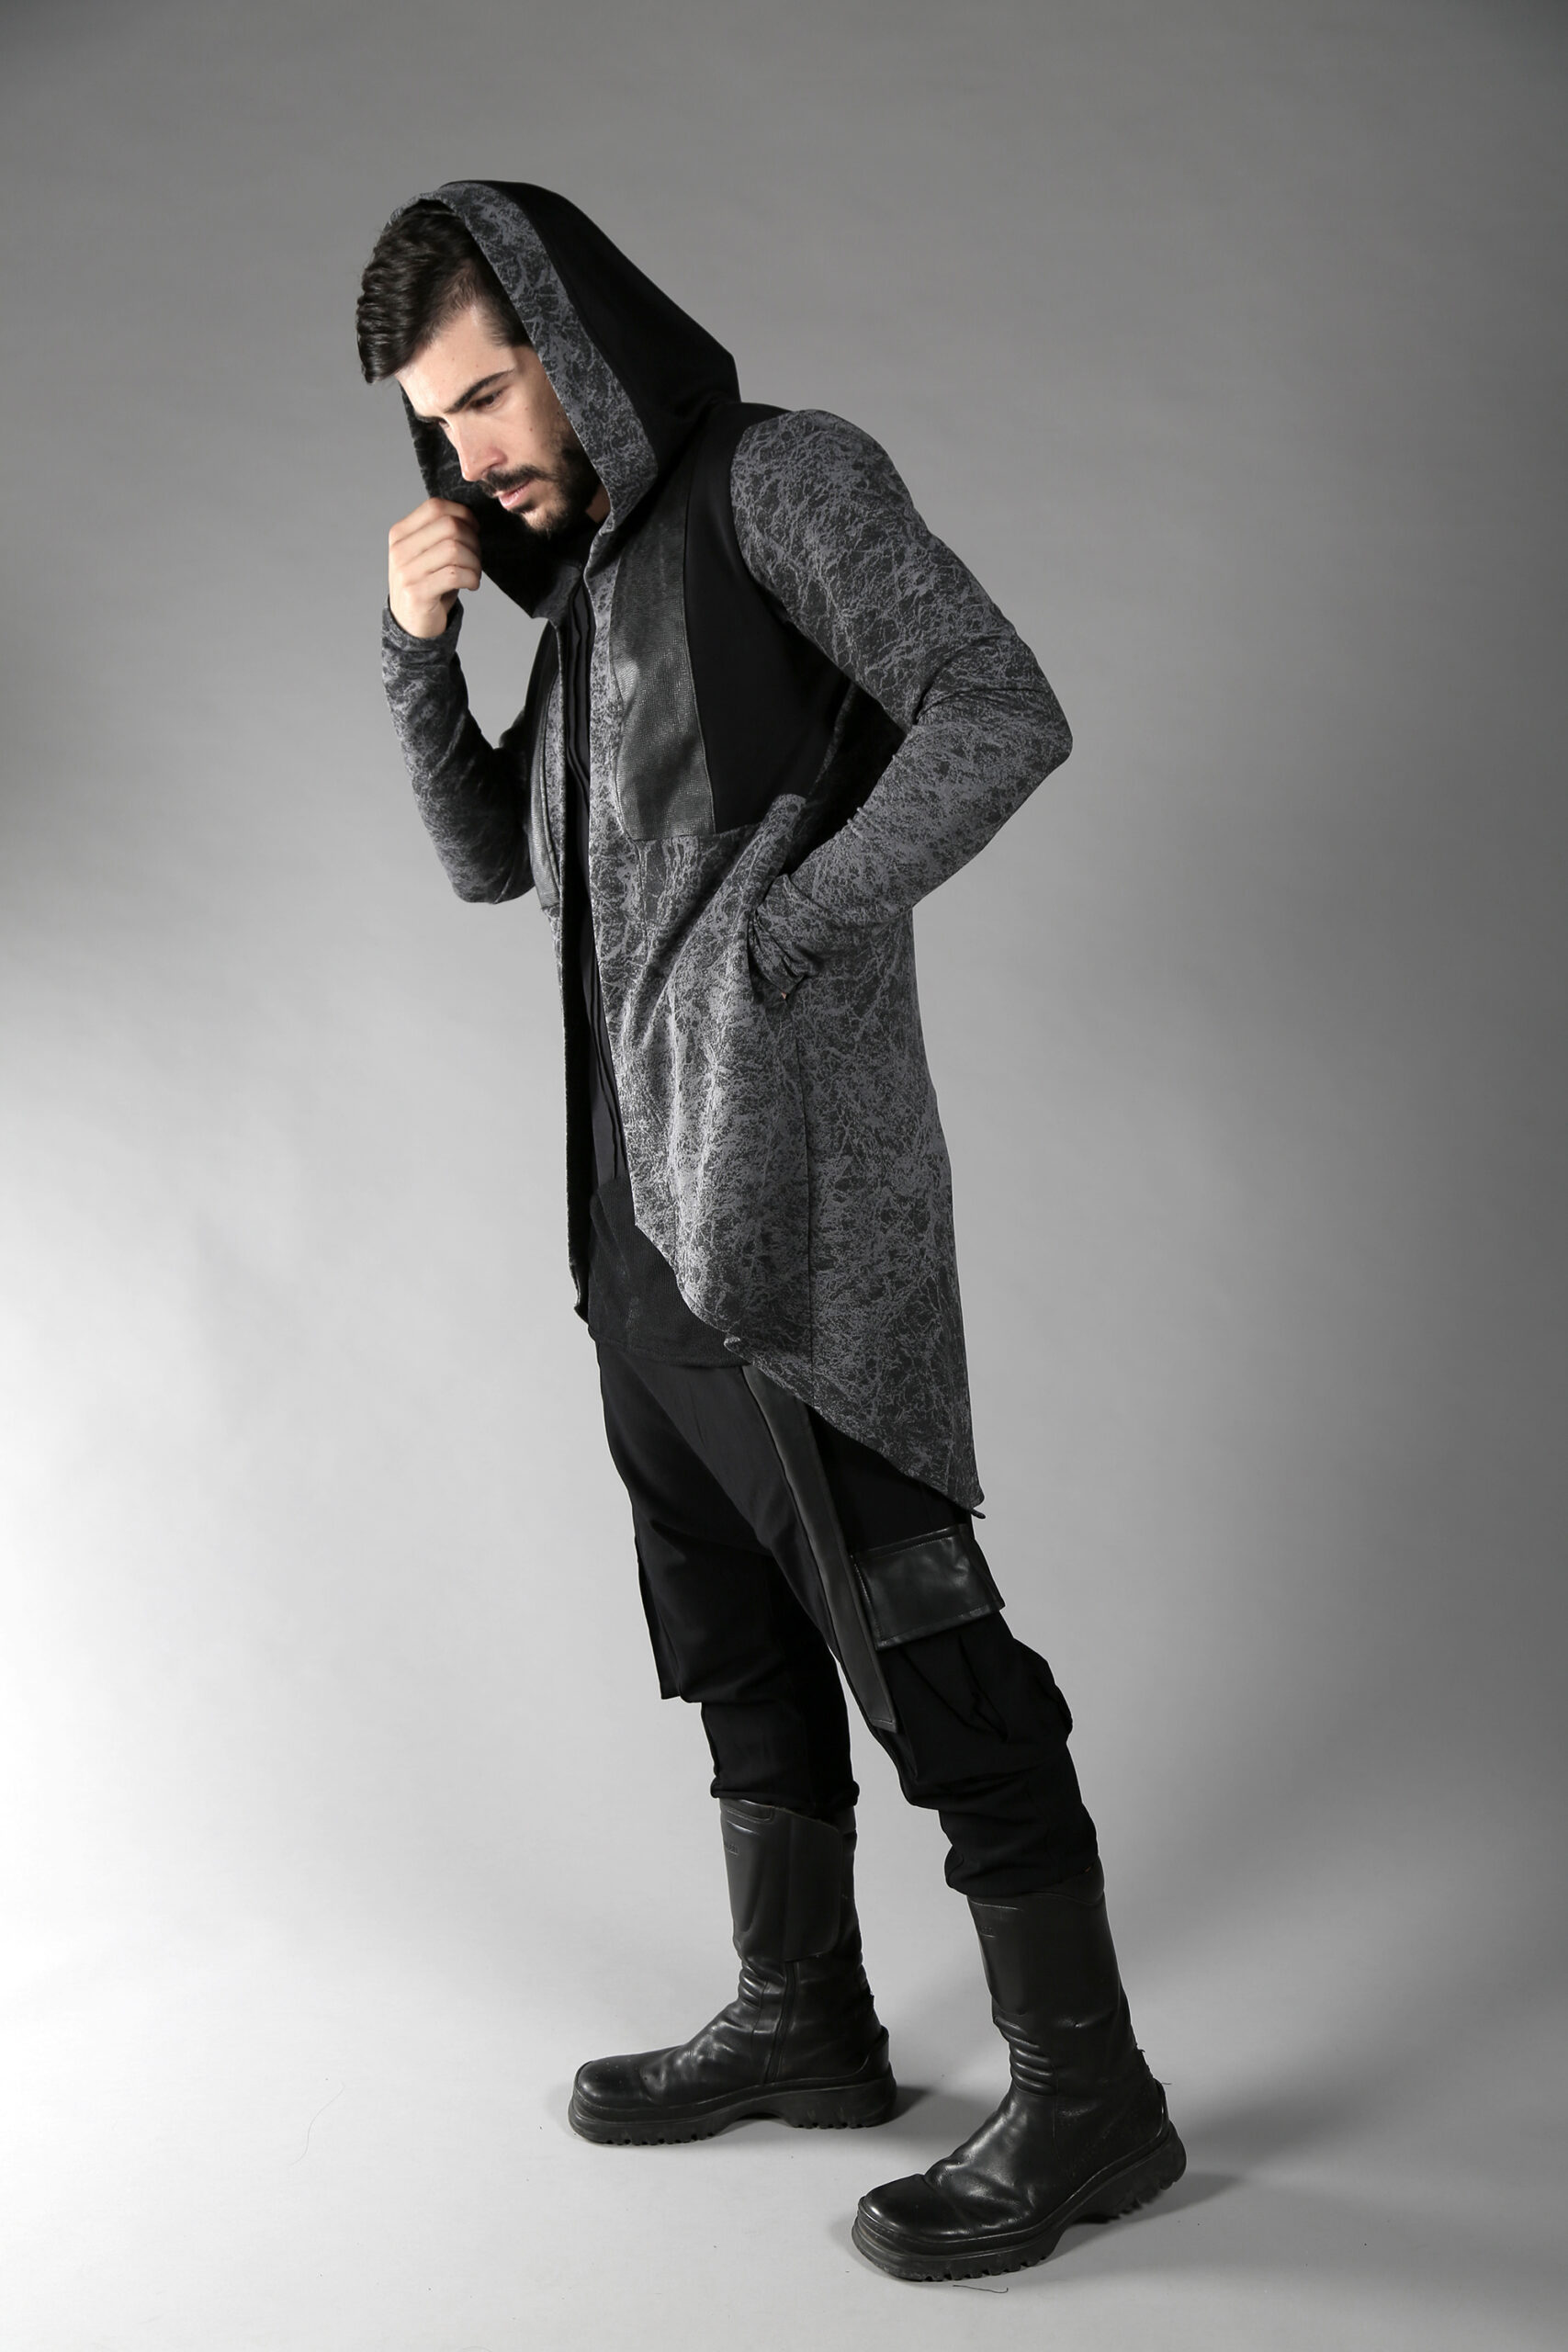 Asymmetric man cardigan with a very unique design. Made from Soft and thick cotton lycra designed with fake leather stripes in few patterns. Double layered big hood & 2 side pockets.